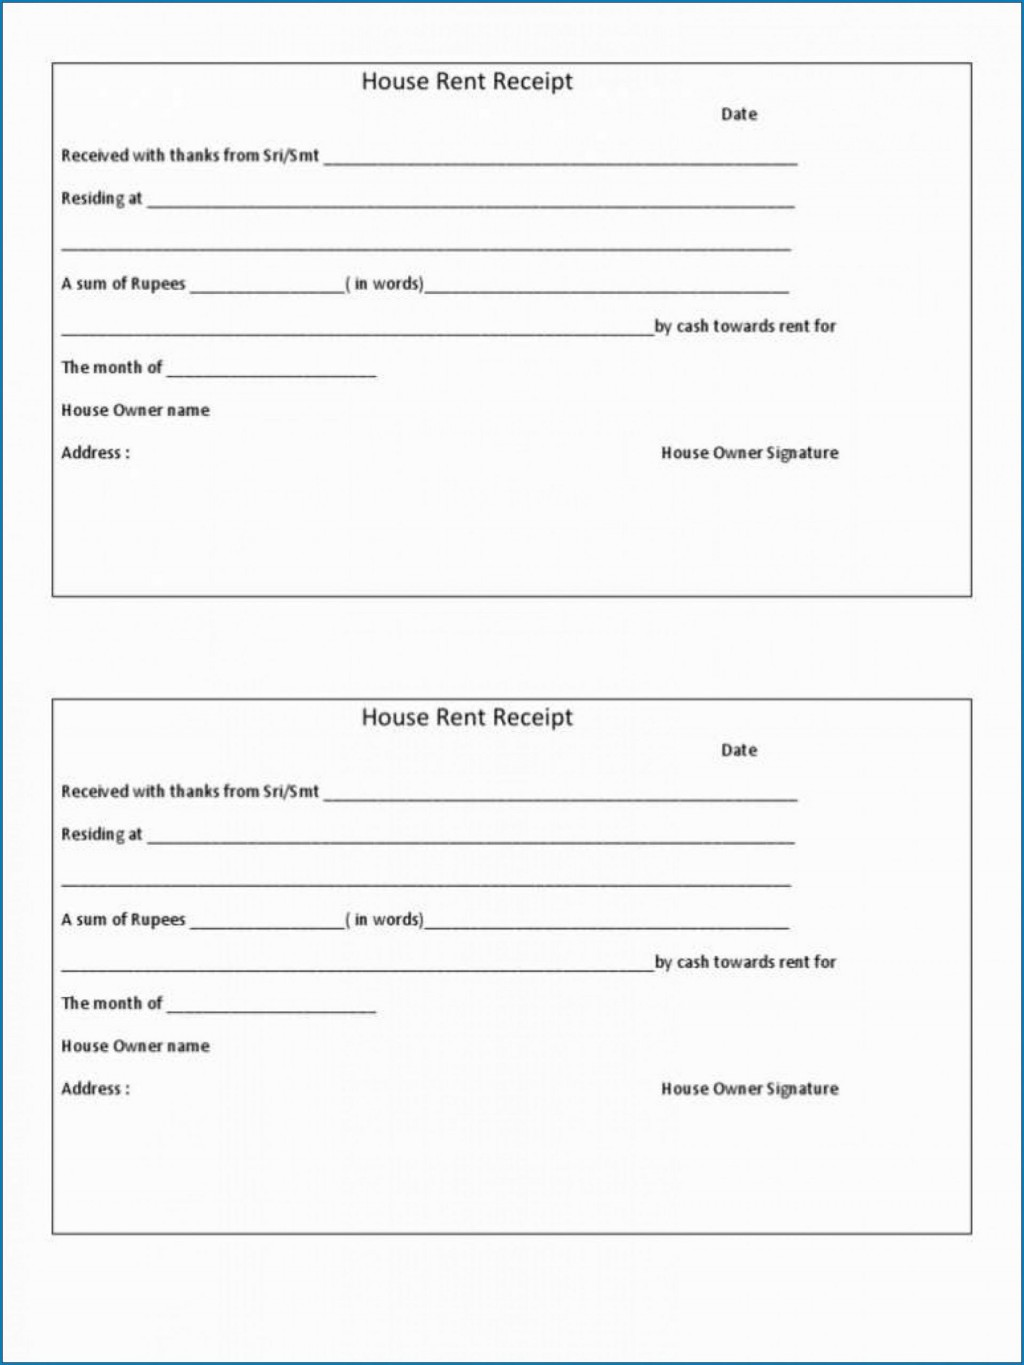 009 Magnificent Rent Receipt Sample Doc Design  Format Word India Docx DocumentLarge